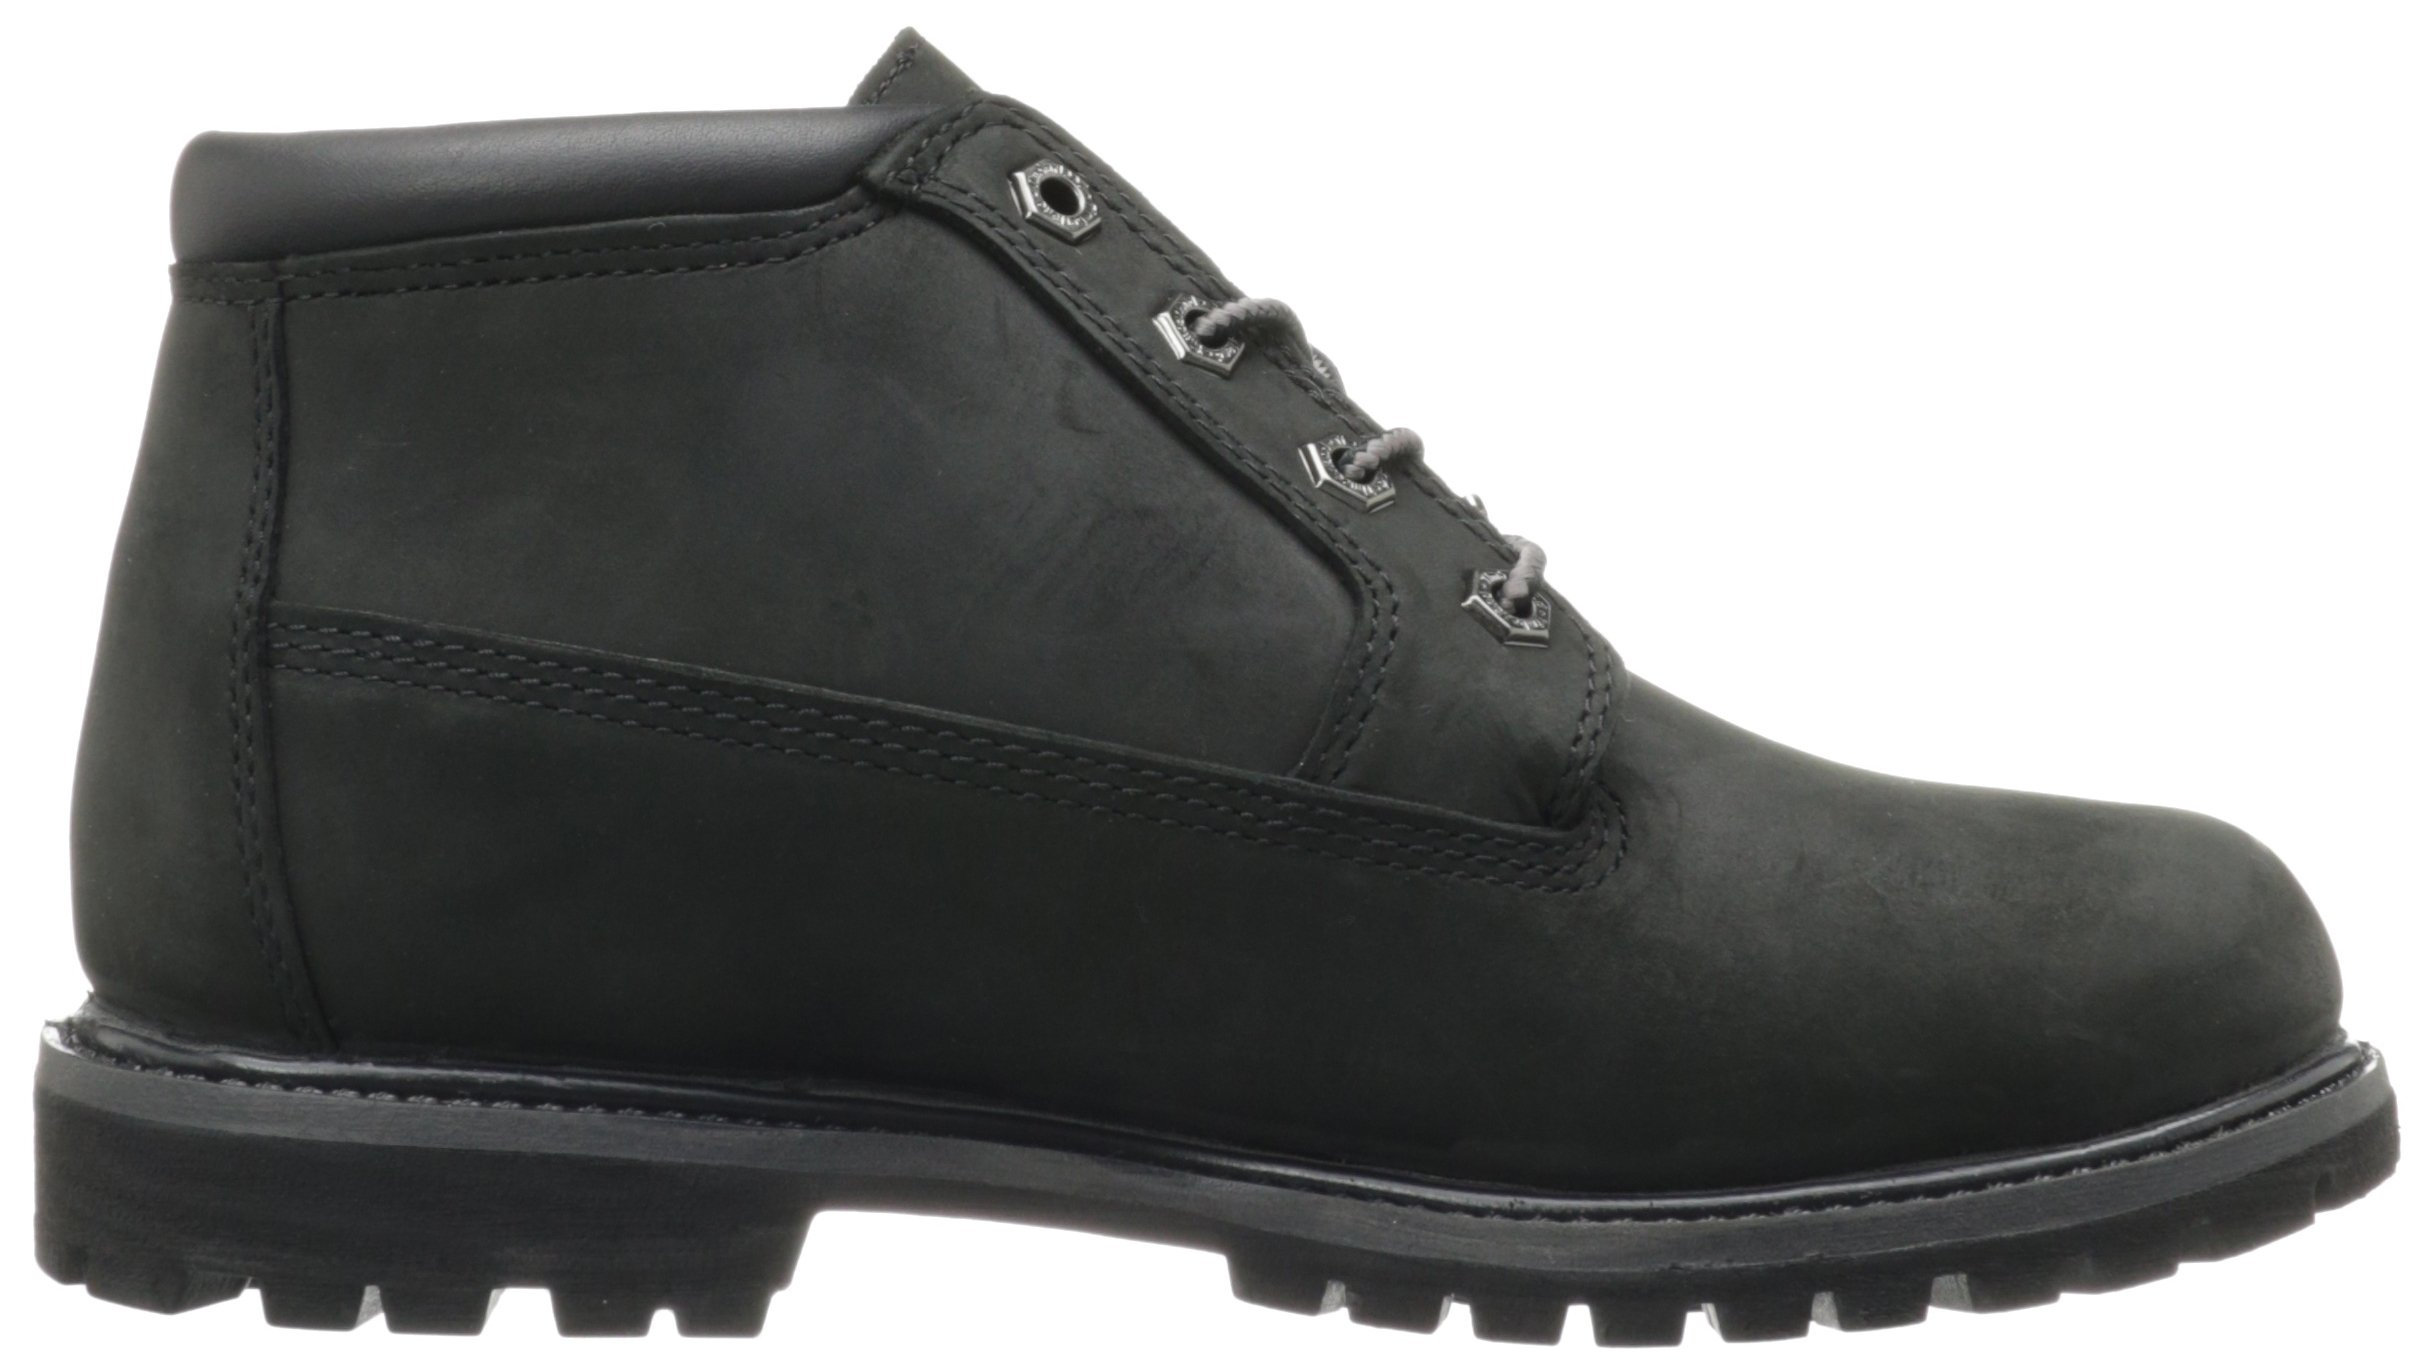 Timberland Women's Nellie Double WP Ankle Boot,Black,6 M US by Timberland (Image #6)